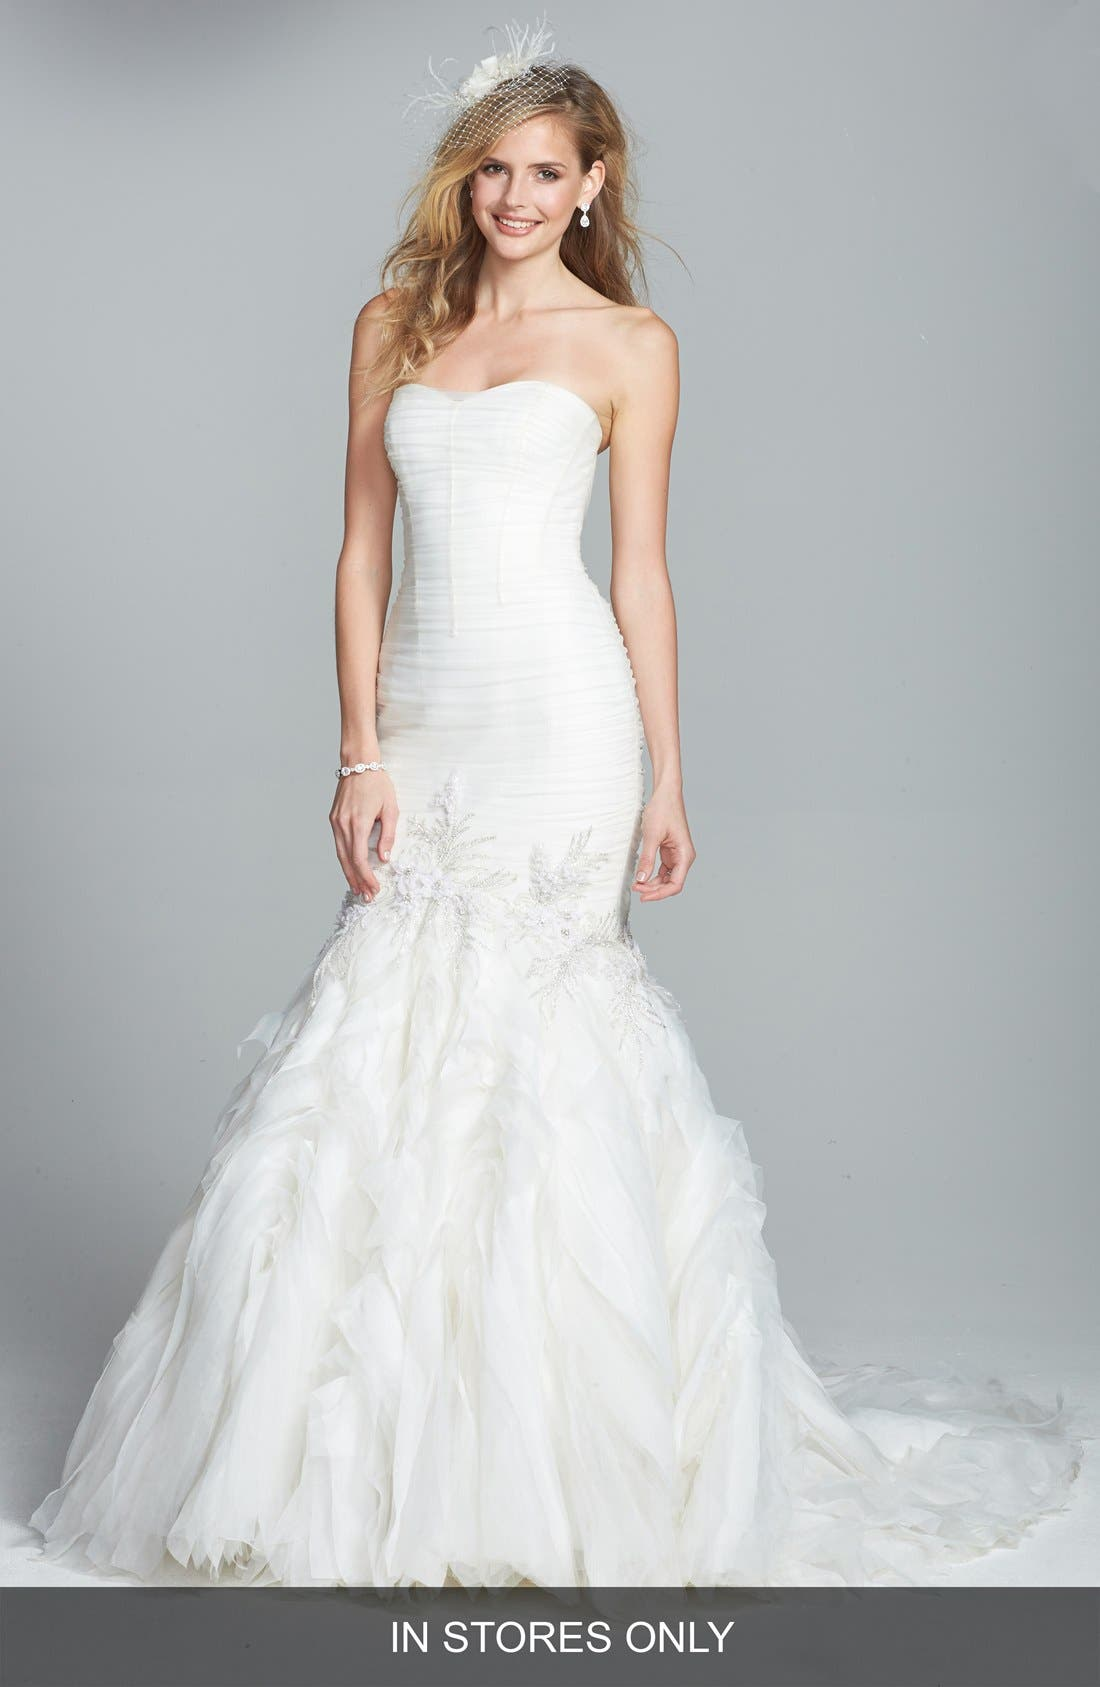 Alternate Image 1 Selected - Badgley Mischka Bridal 'Bridgette' Embellished Tulle Mermaid Dress (In Stores Only)